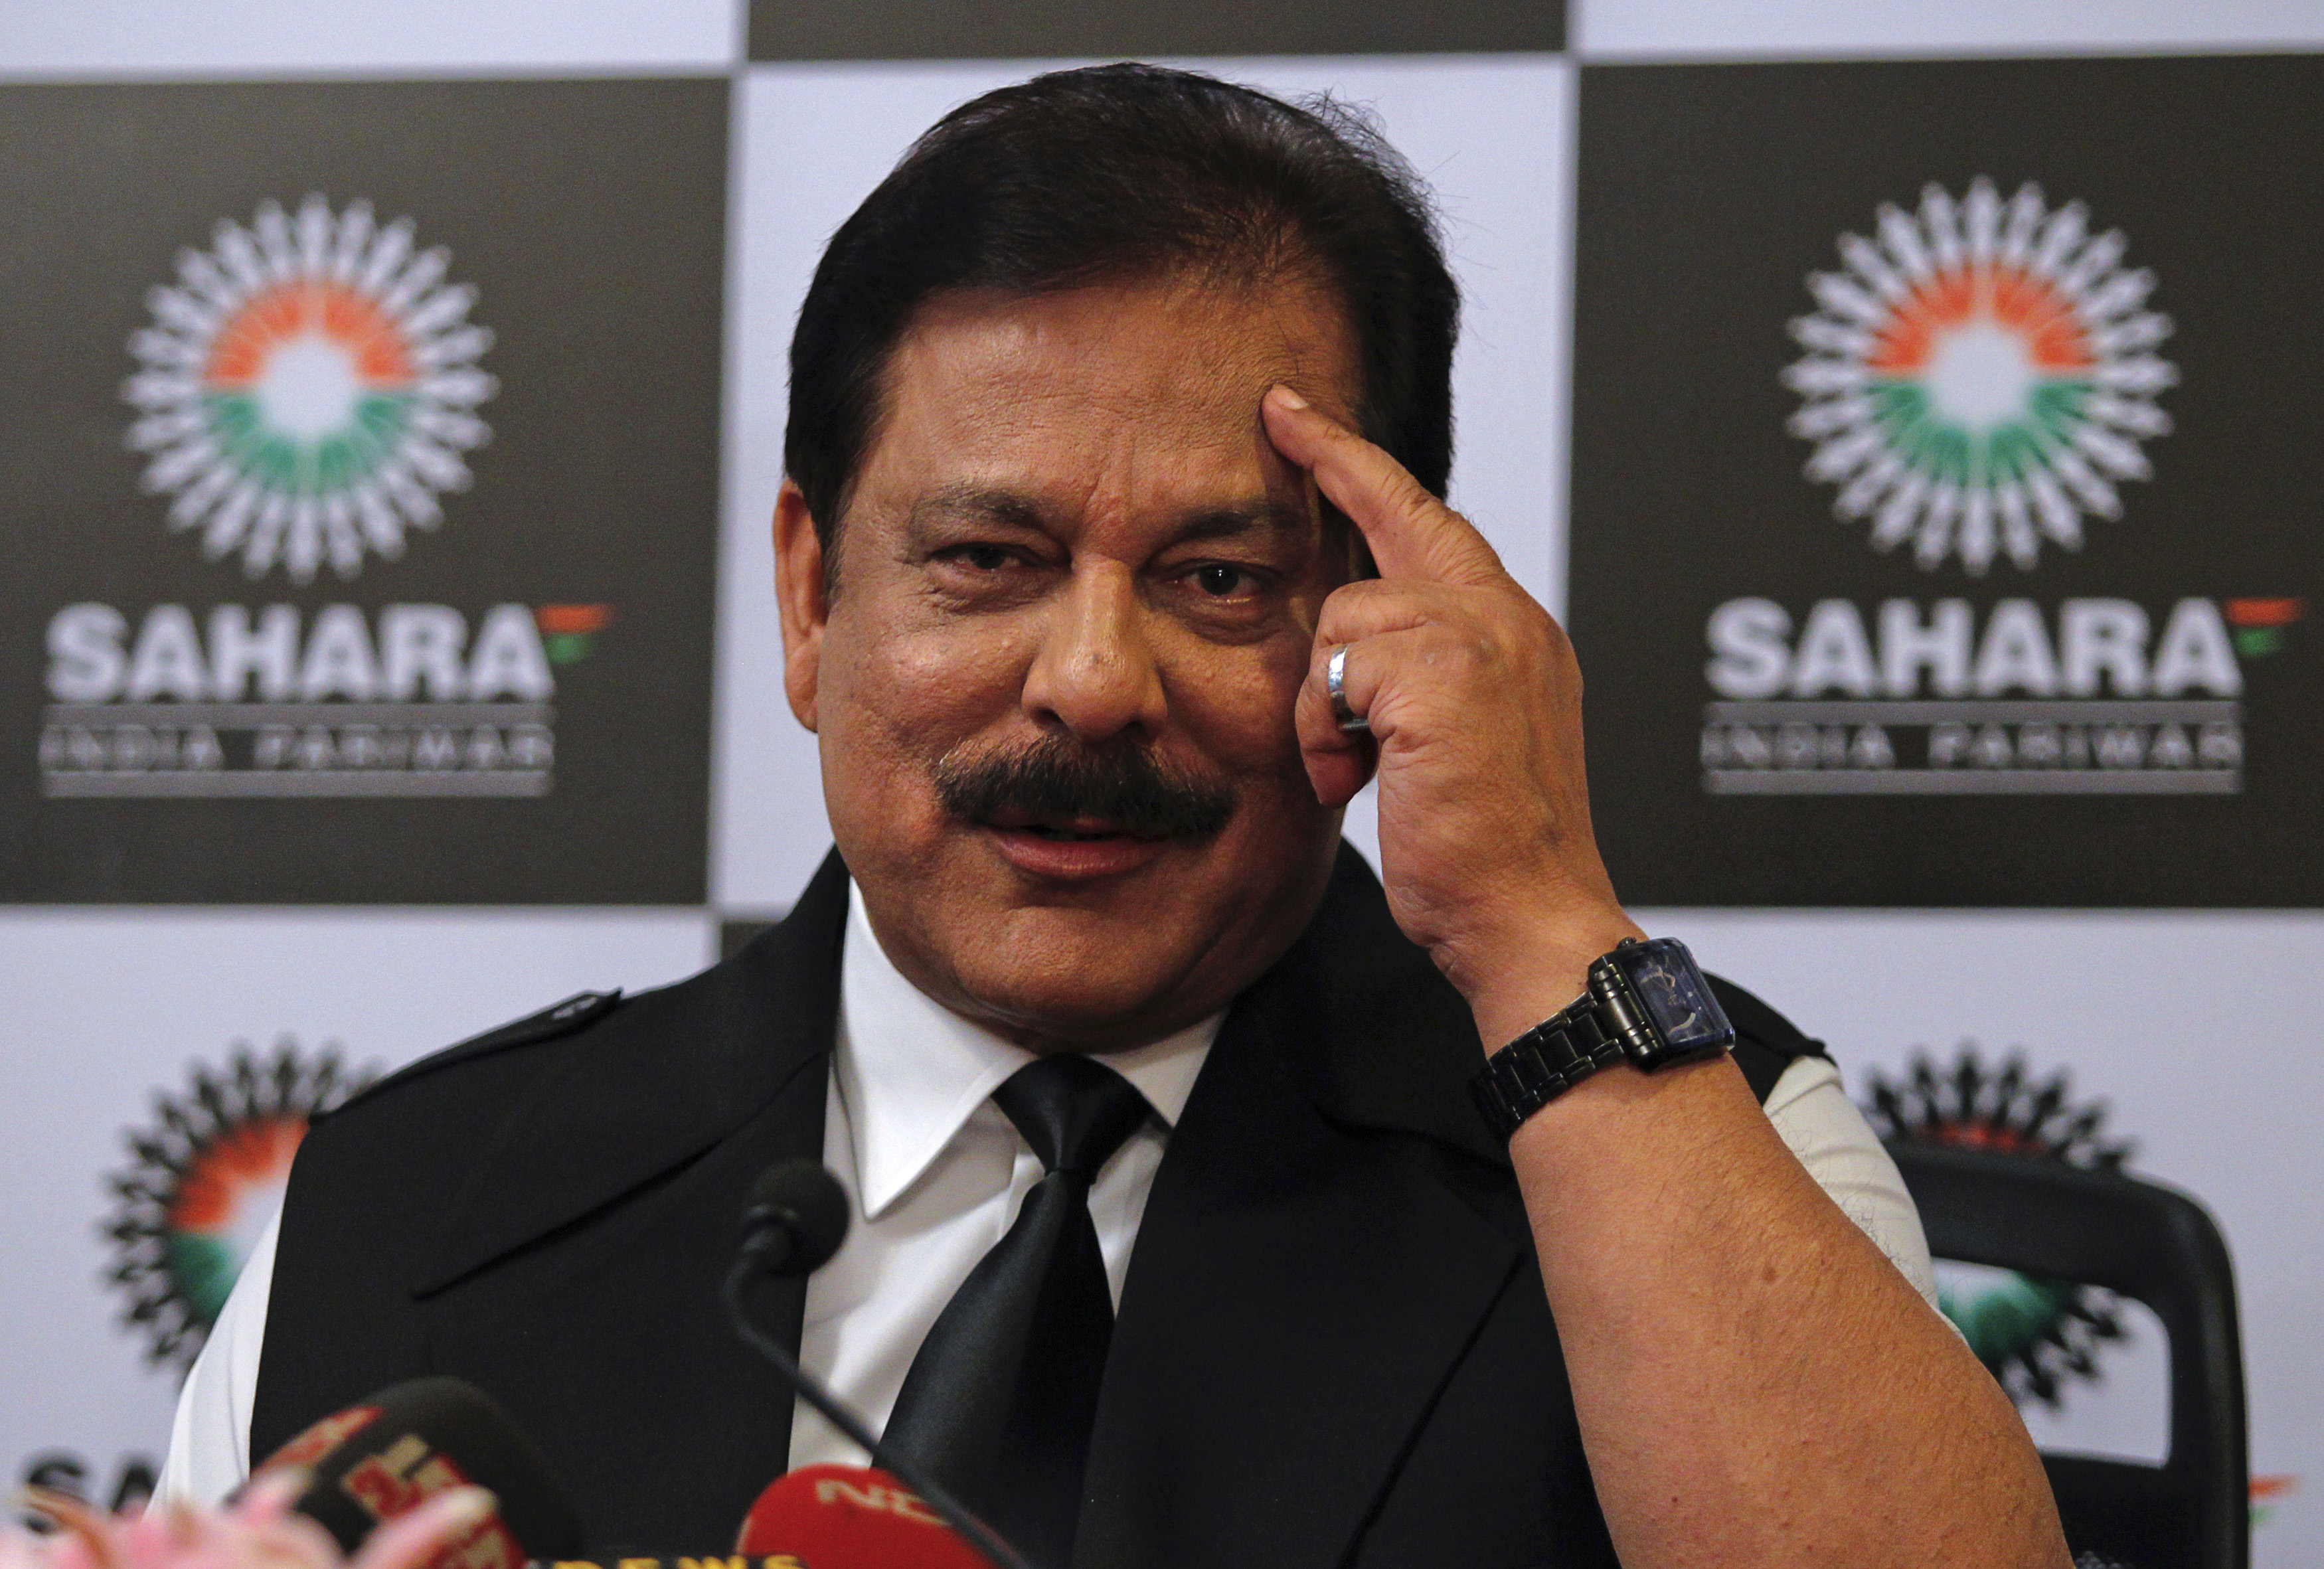 Sahara close to $2B deal with Mirach Capital for Subrata Roy bail